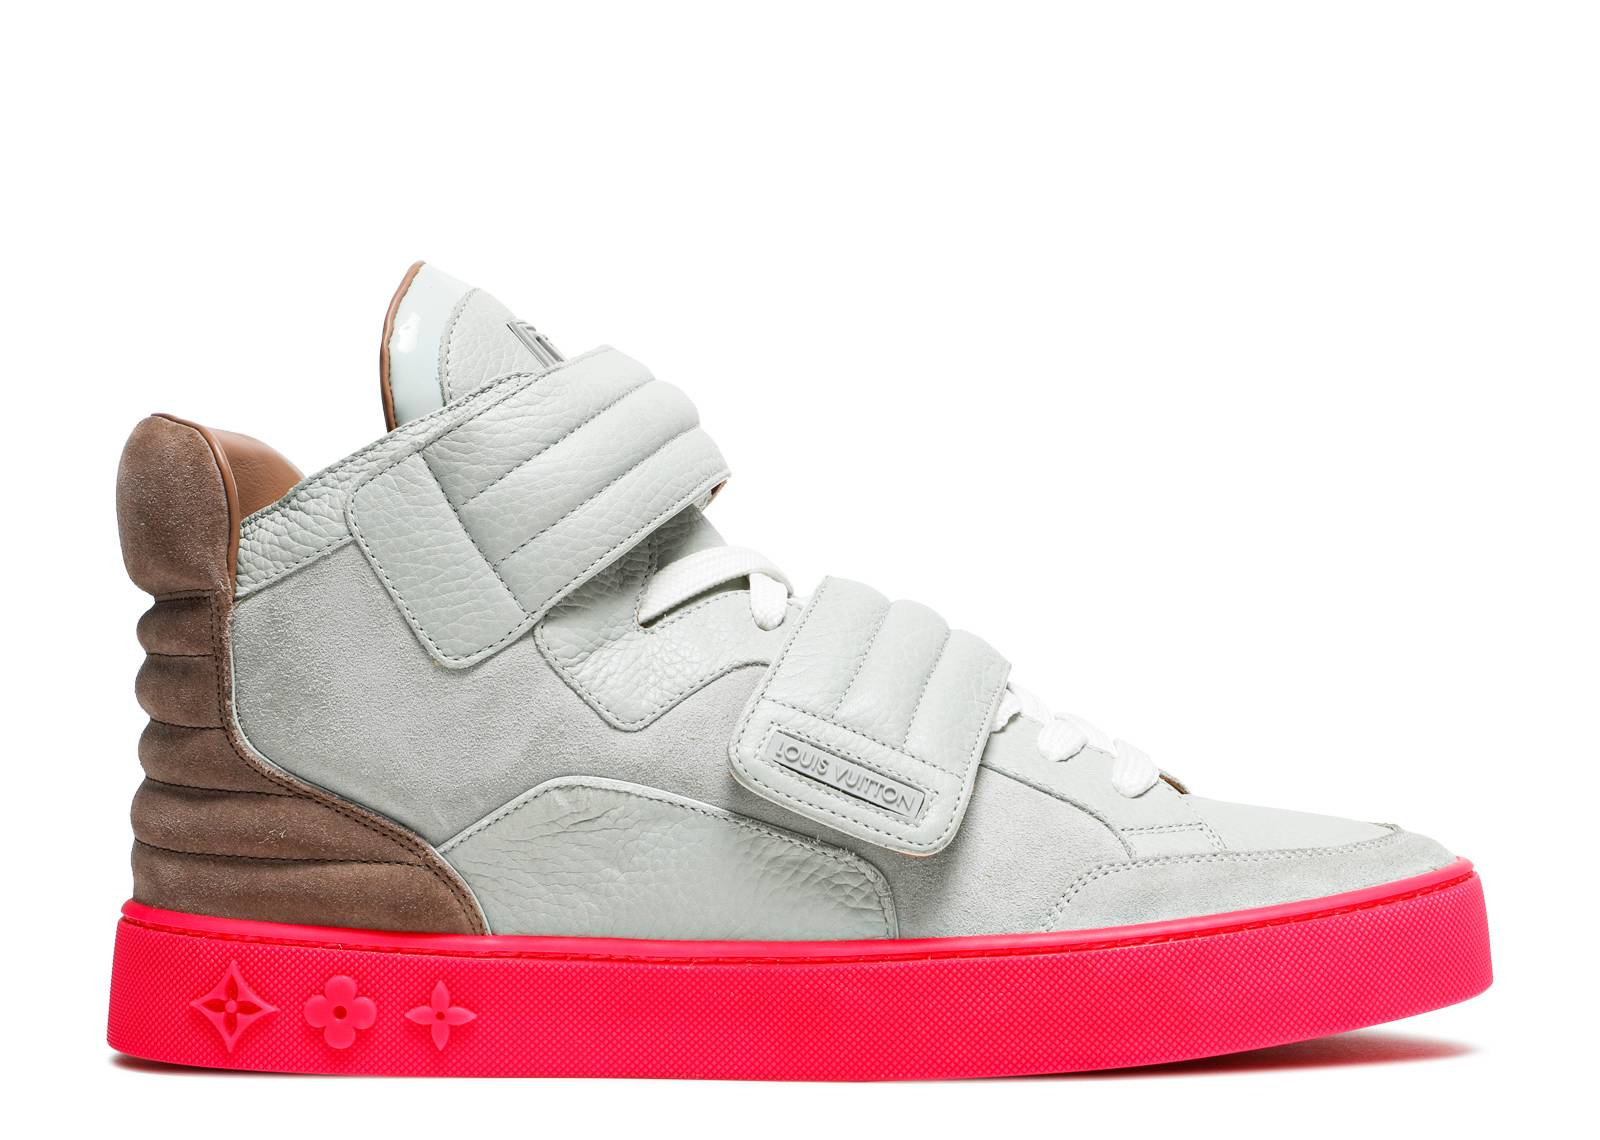 Price Of Louis Vuitton Kanye West Shoes